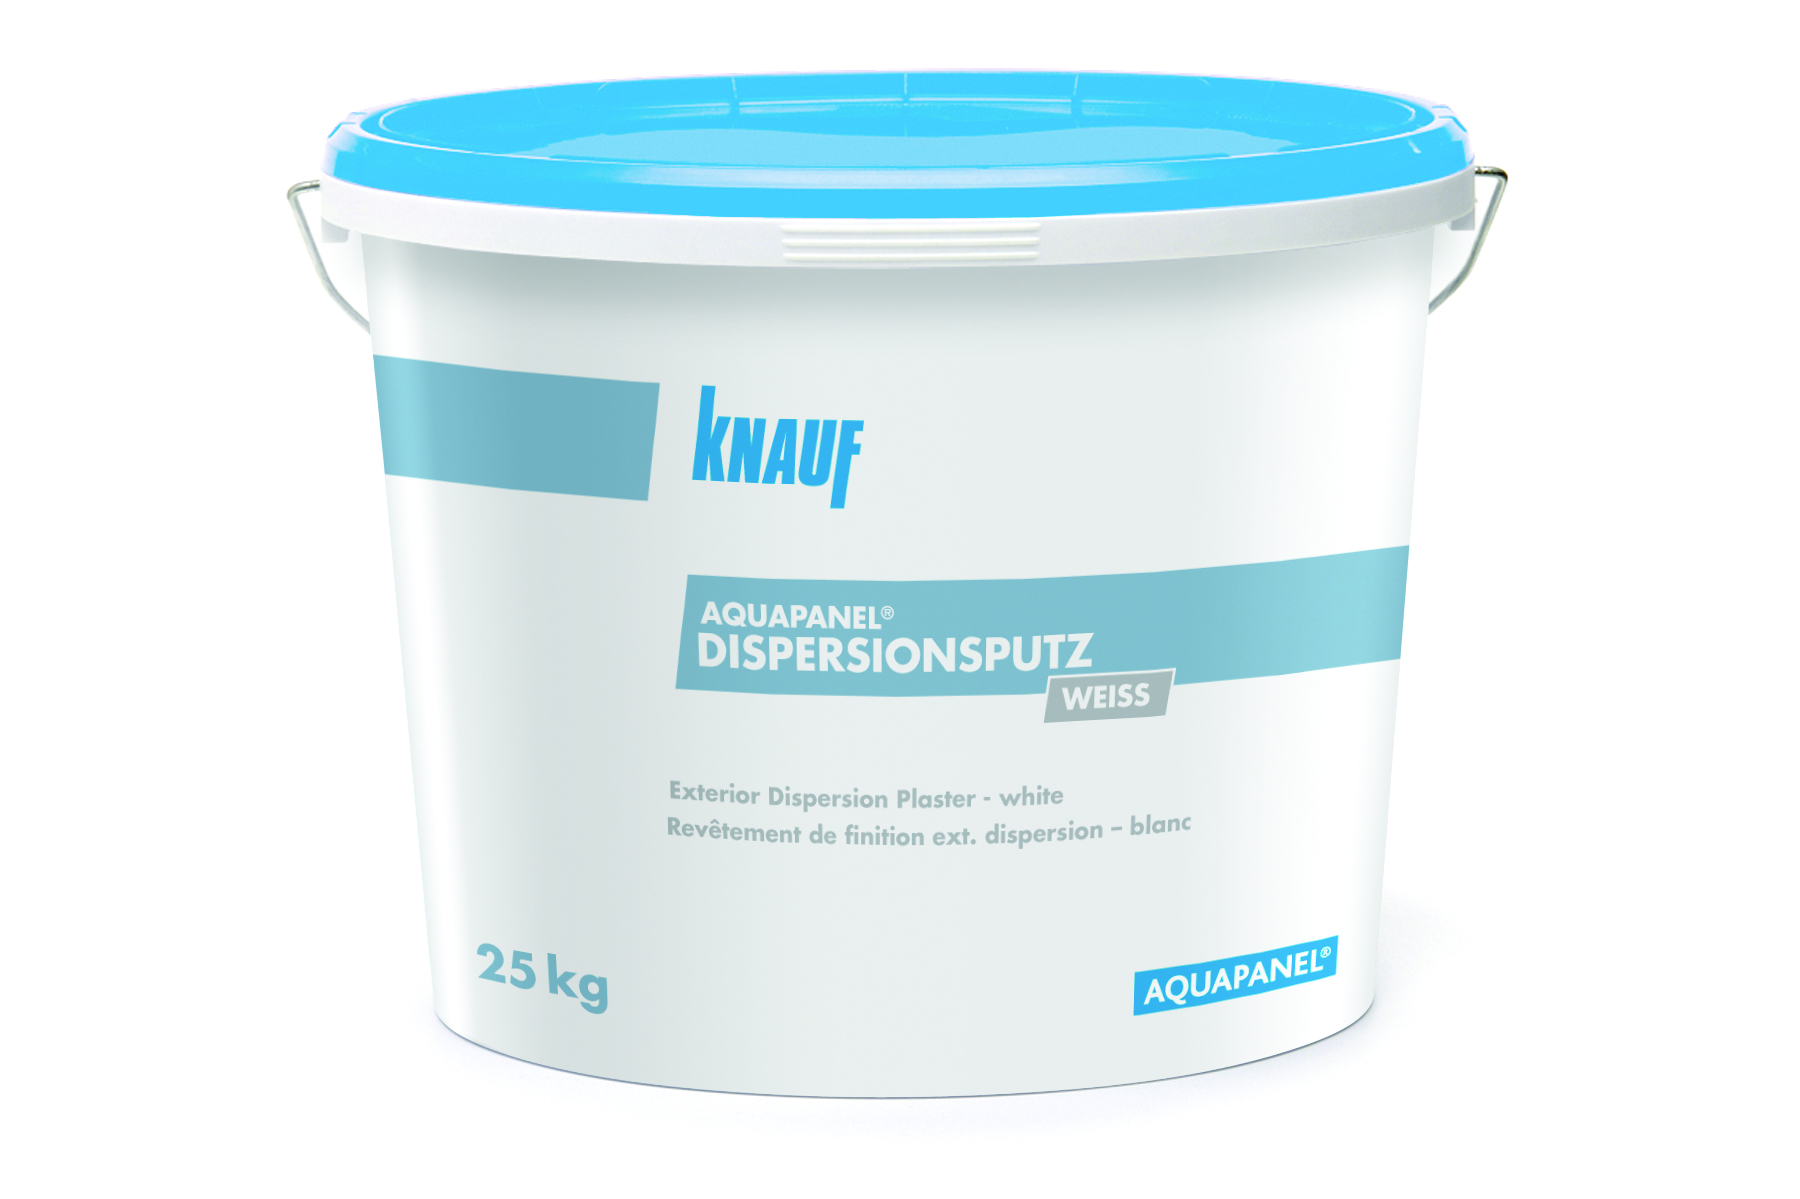 AQUAPANEL® Exterior Dispersion Plaster - White